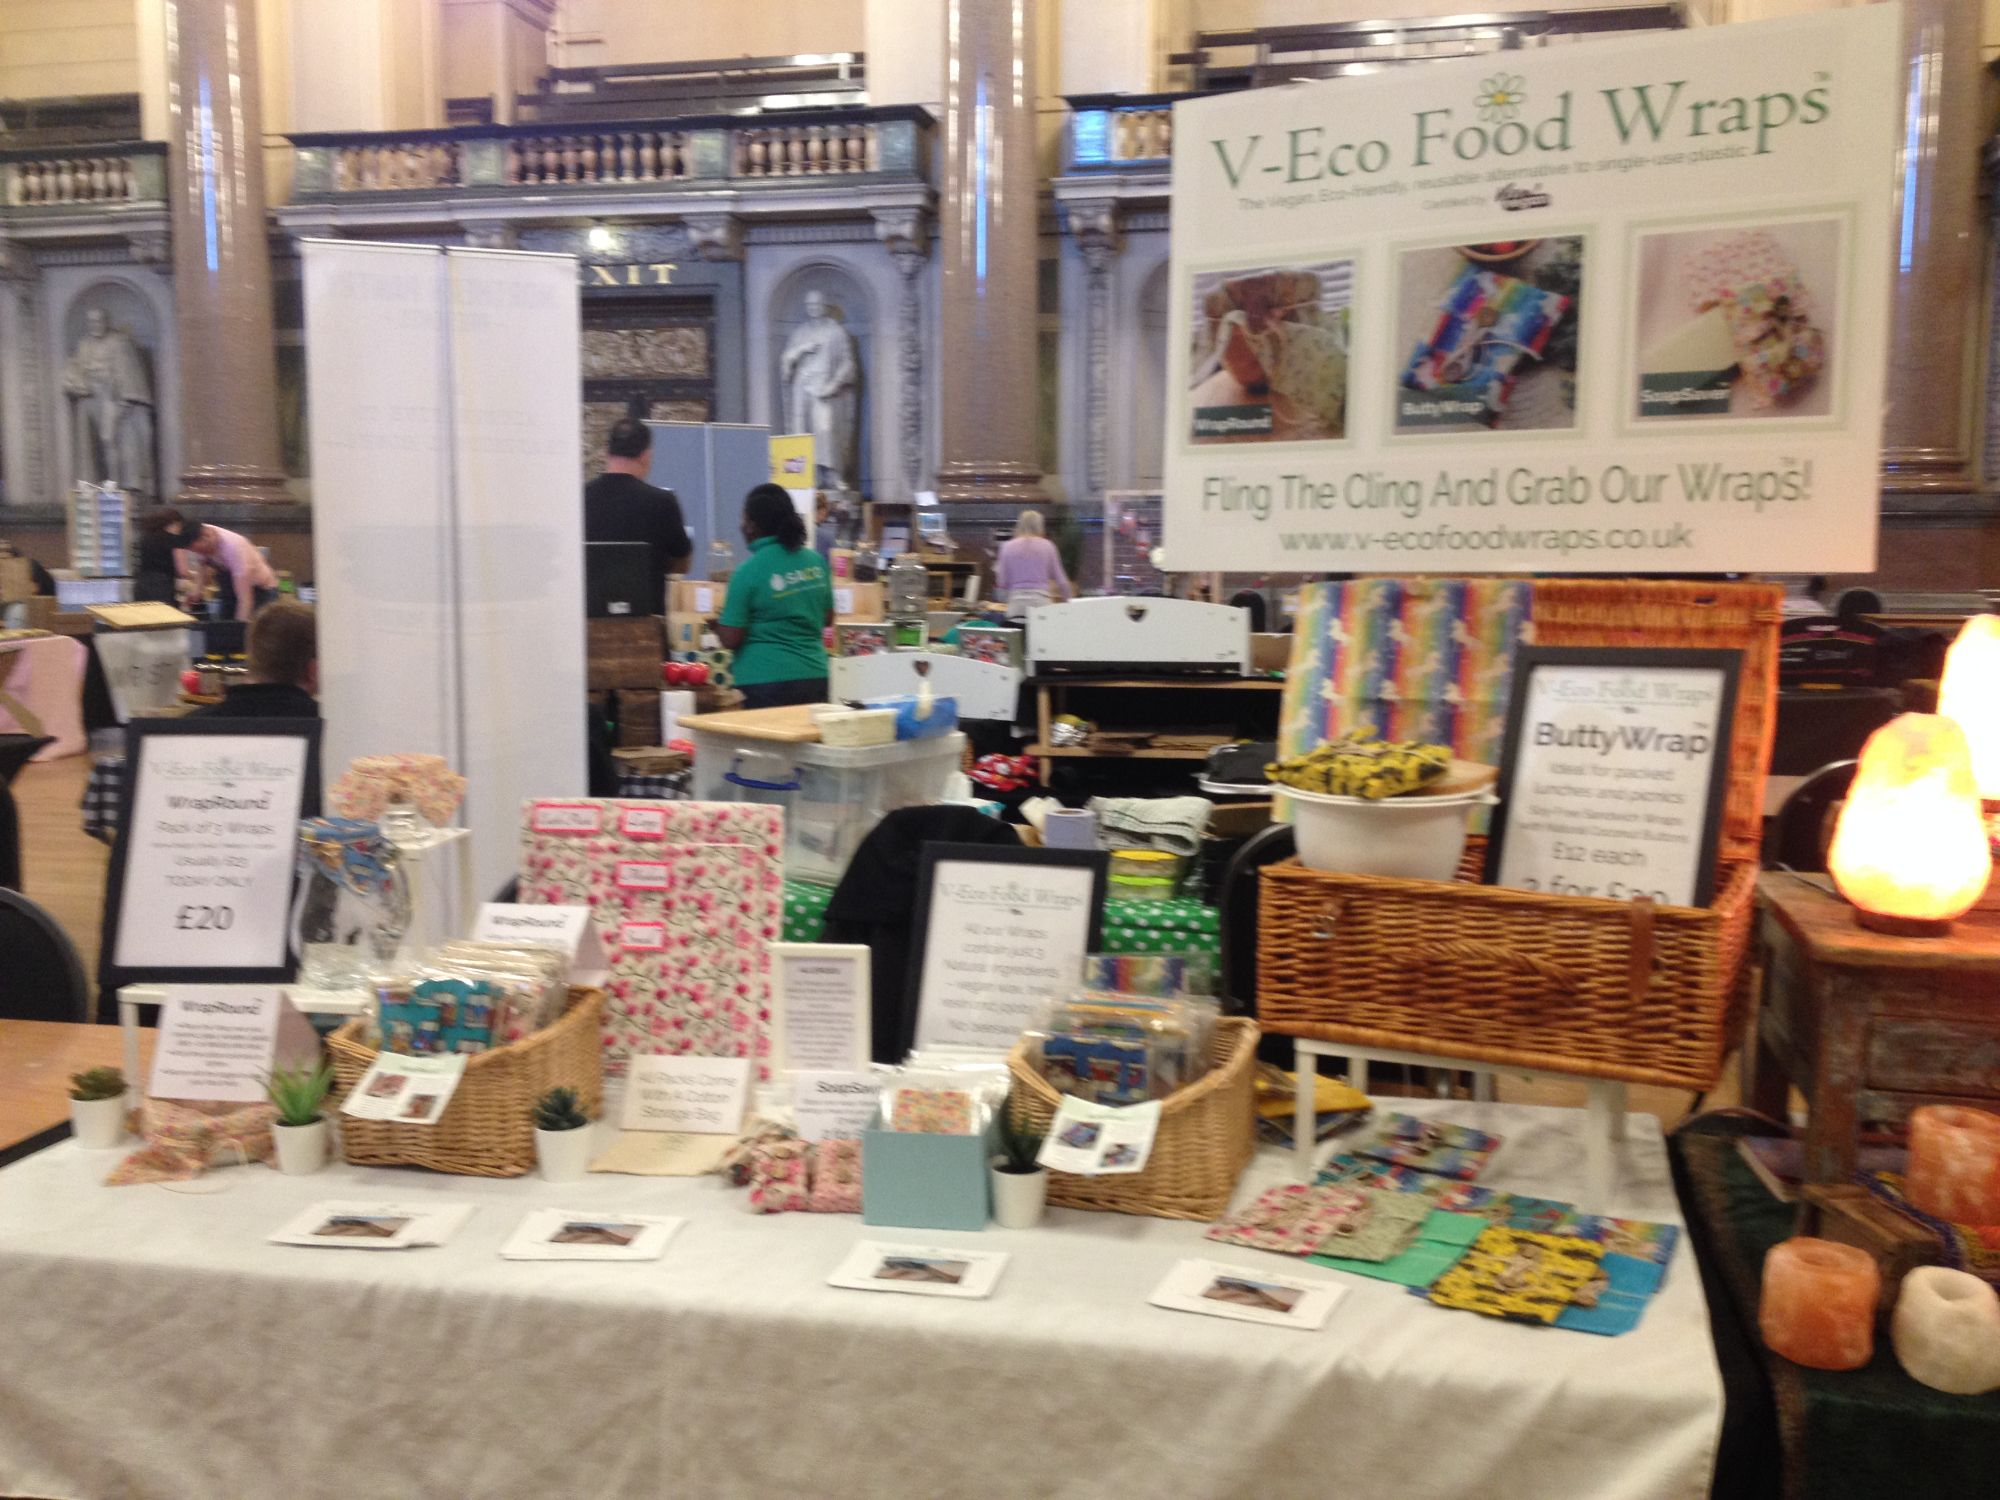 V-Eco Food Wraps at St George's Hall in Liverpool